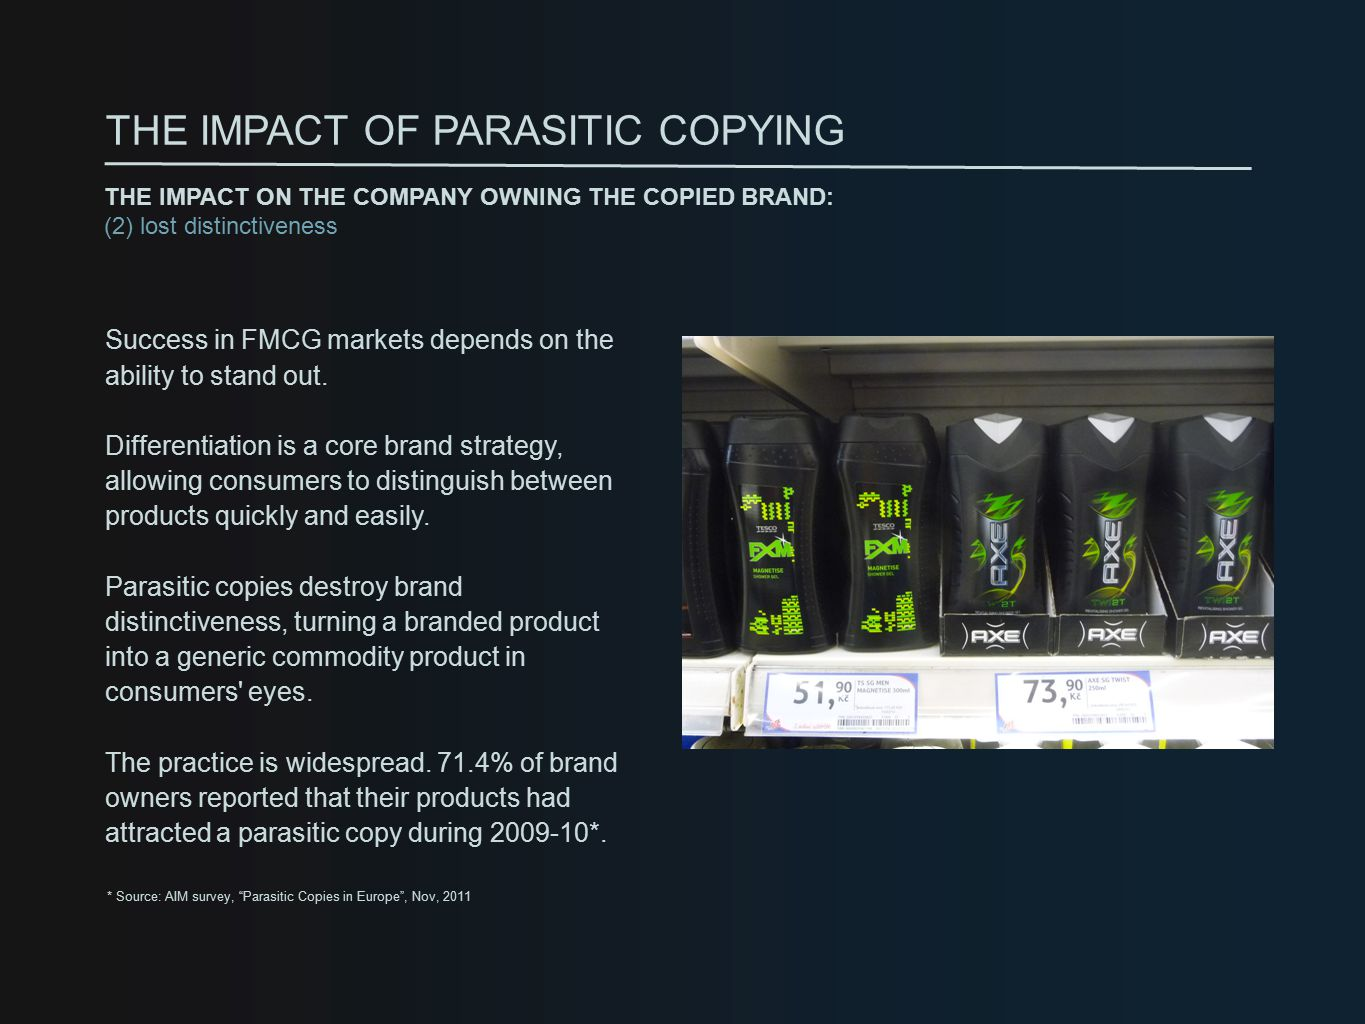 Success in FMCG markets depends on the ability to stand out.